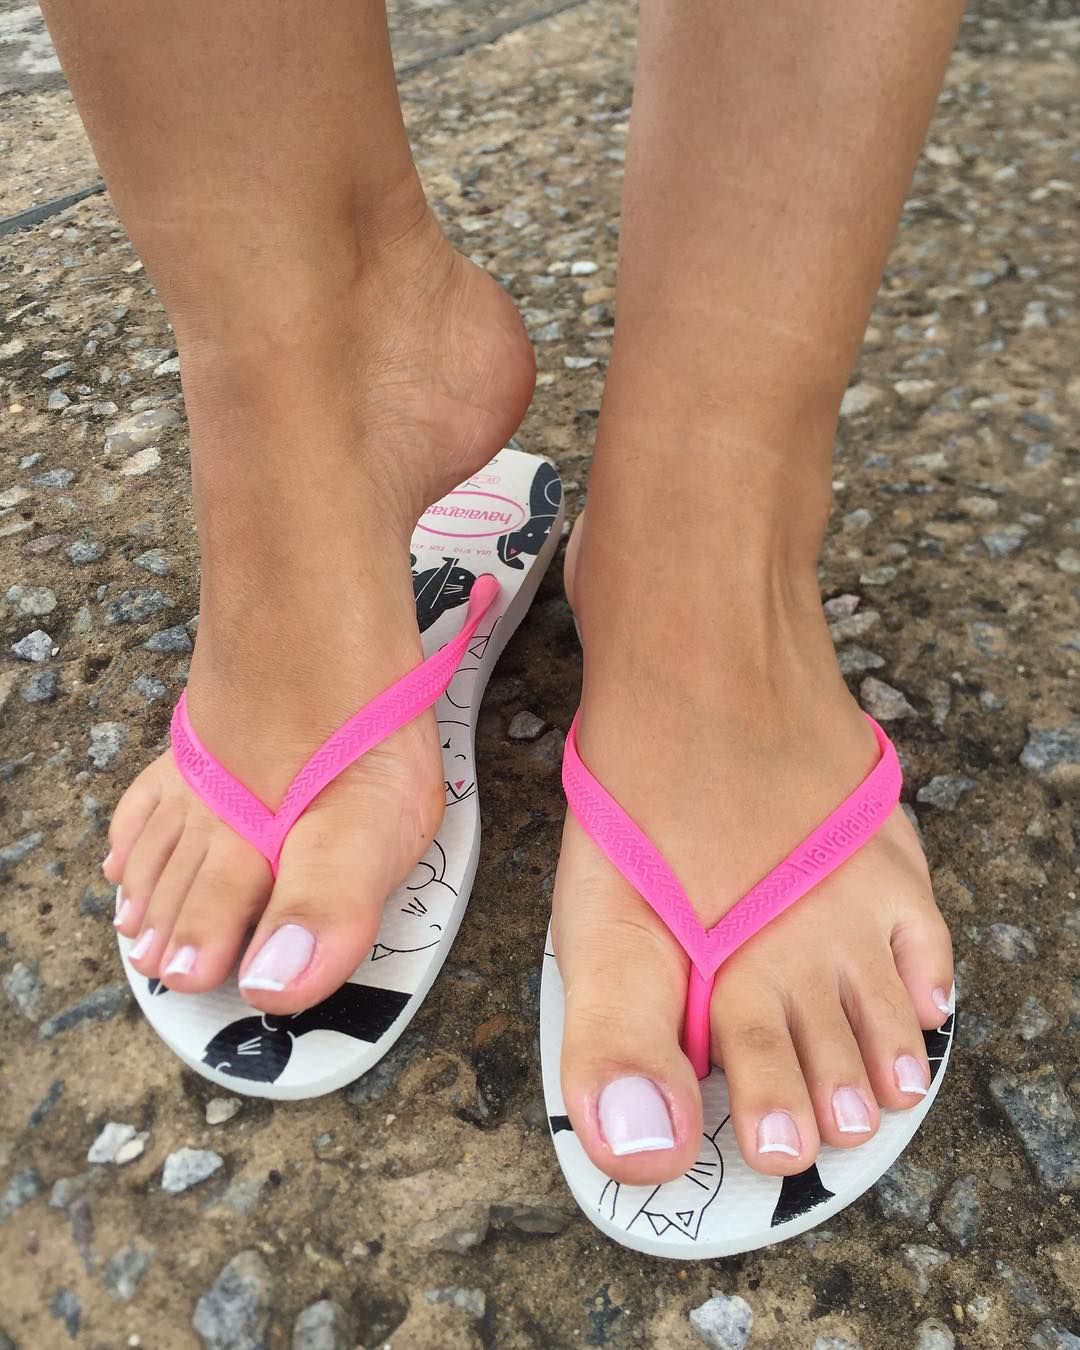 Sexy Feet In Flip Flops Painted Toes